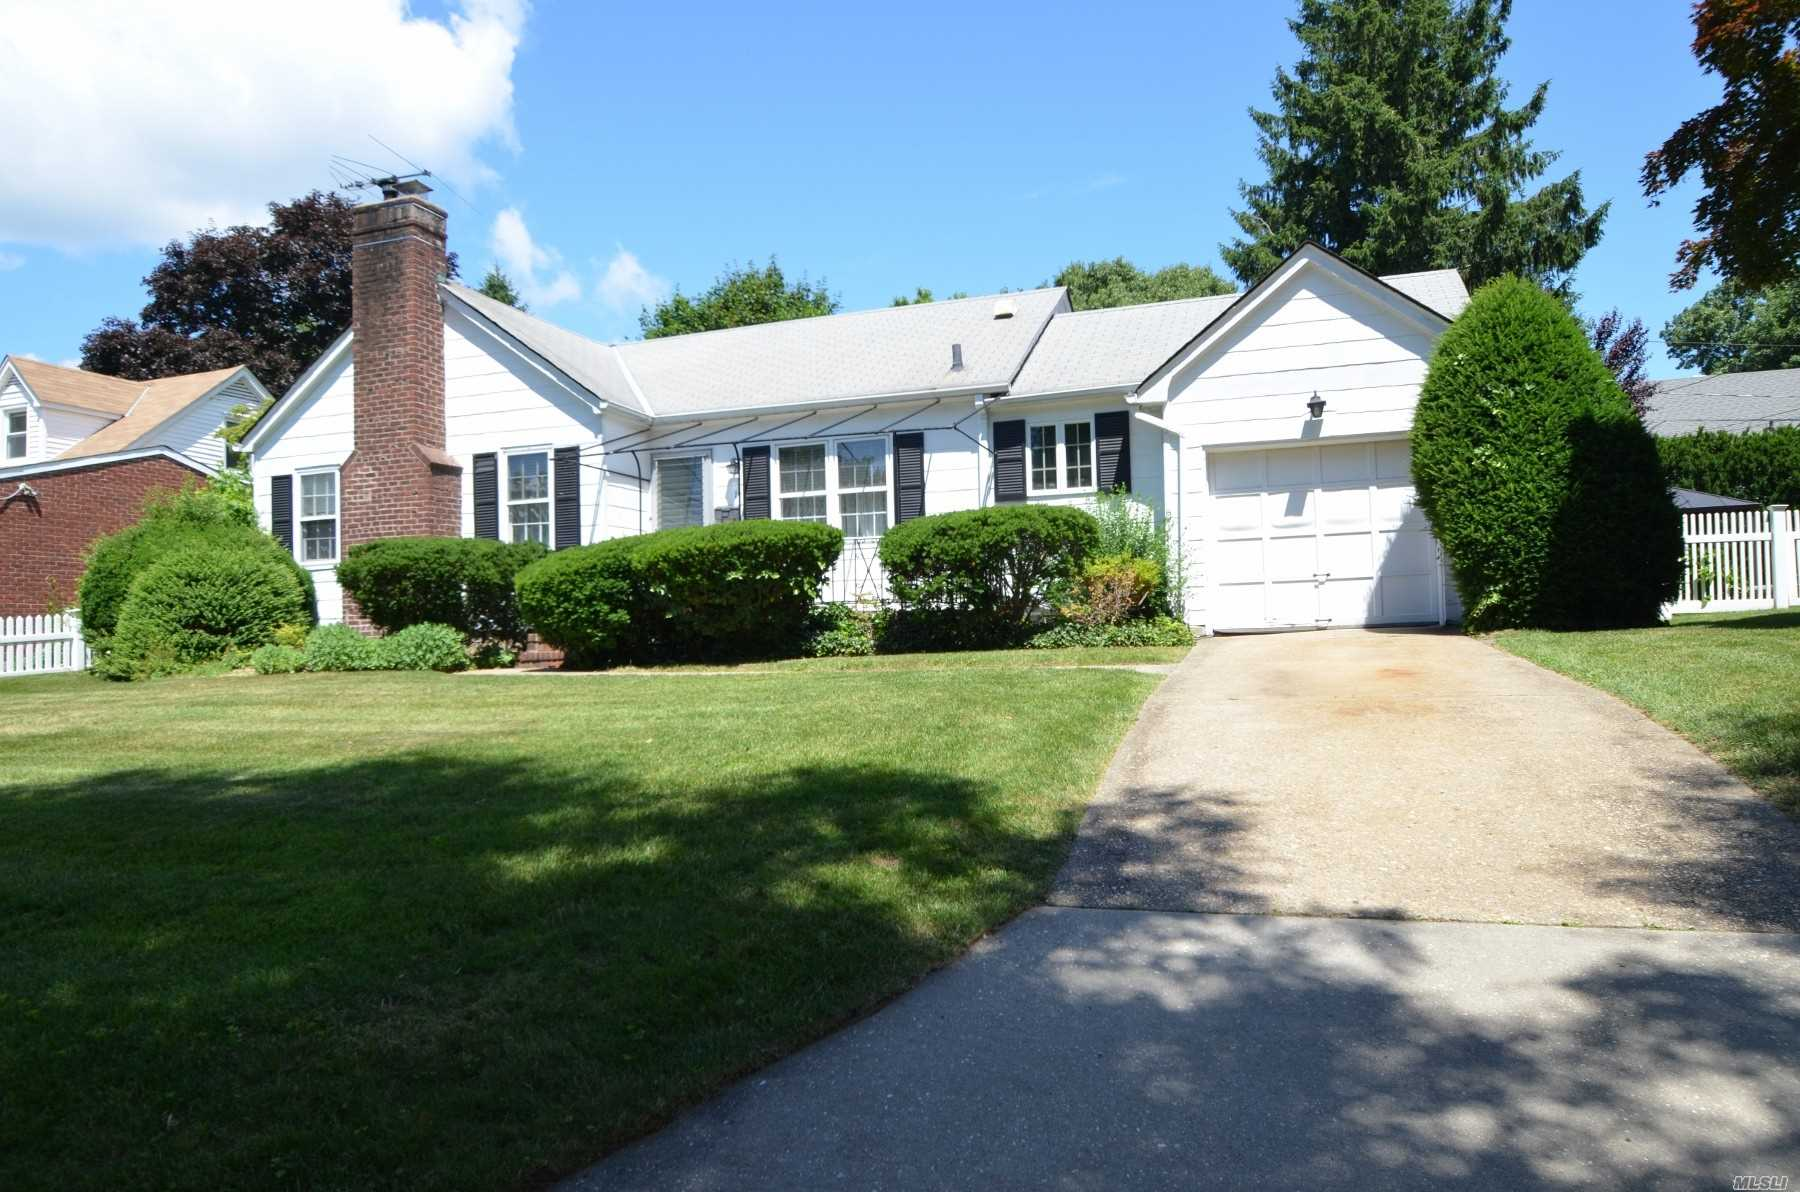 Very Sweet Ranch! Ef, Lr W/Fpl, Fdr, Eik, Mstr Bdrm, 2nd Bdrm, Full Bath. Pull Down Stairs To Attic. Full, Part Finished Basement W/Laundry, Rec Rm, Lots Of Storage & Mechanicals. Lovely Yard W/Patio!